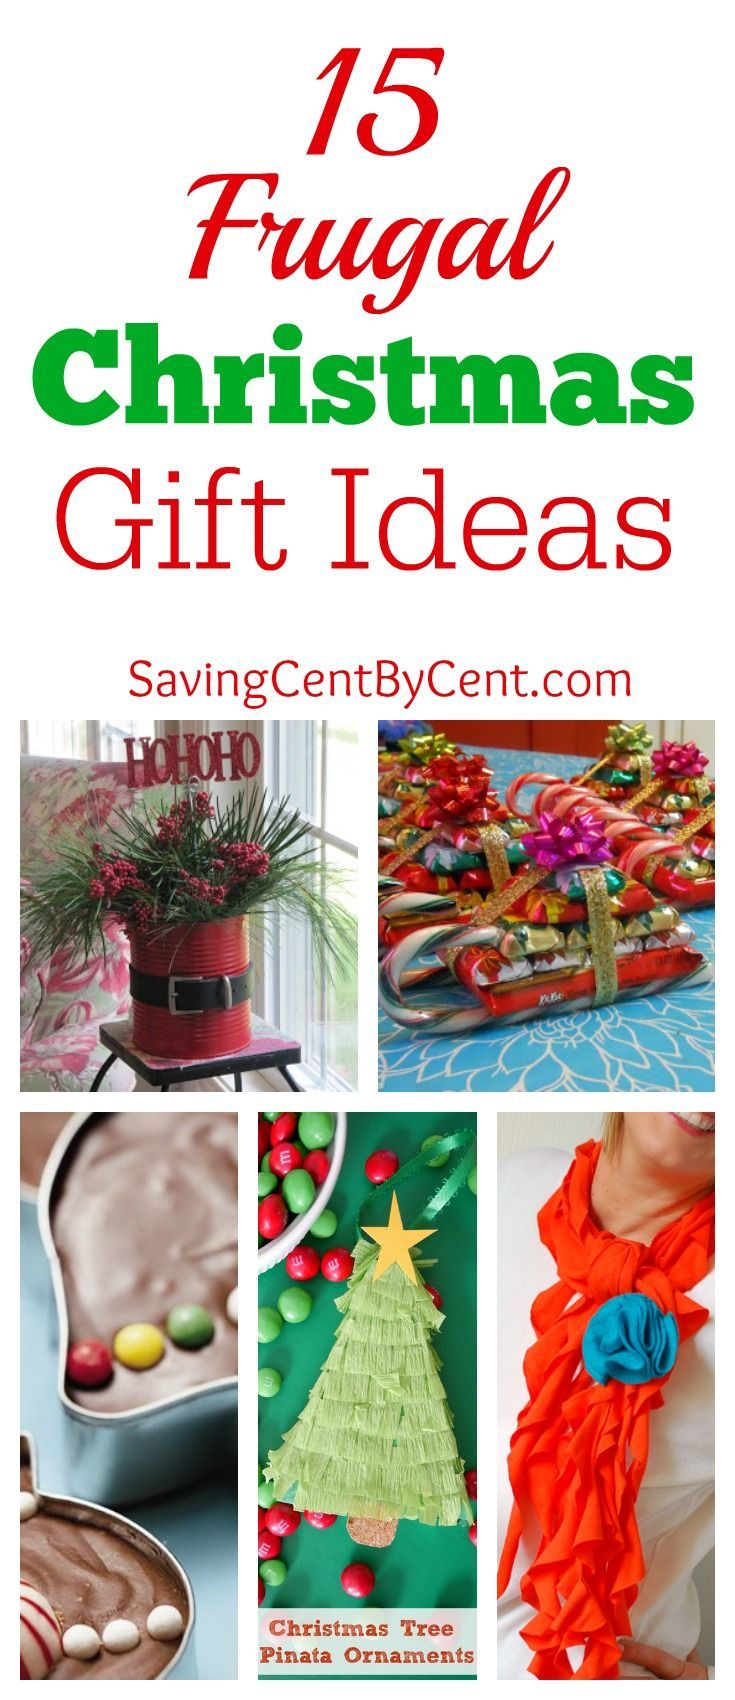 15 Frugal Christmas Gift Ideas | Pinterest | Frugal christmas ...